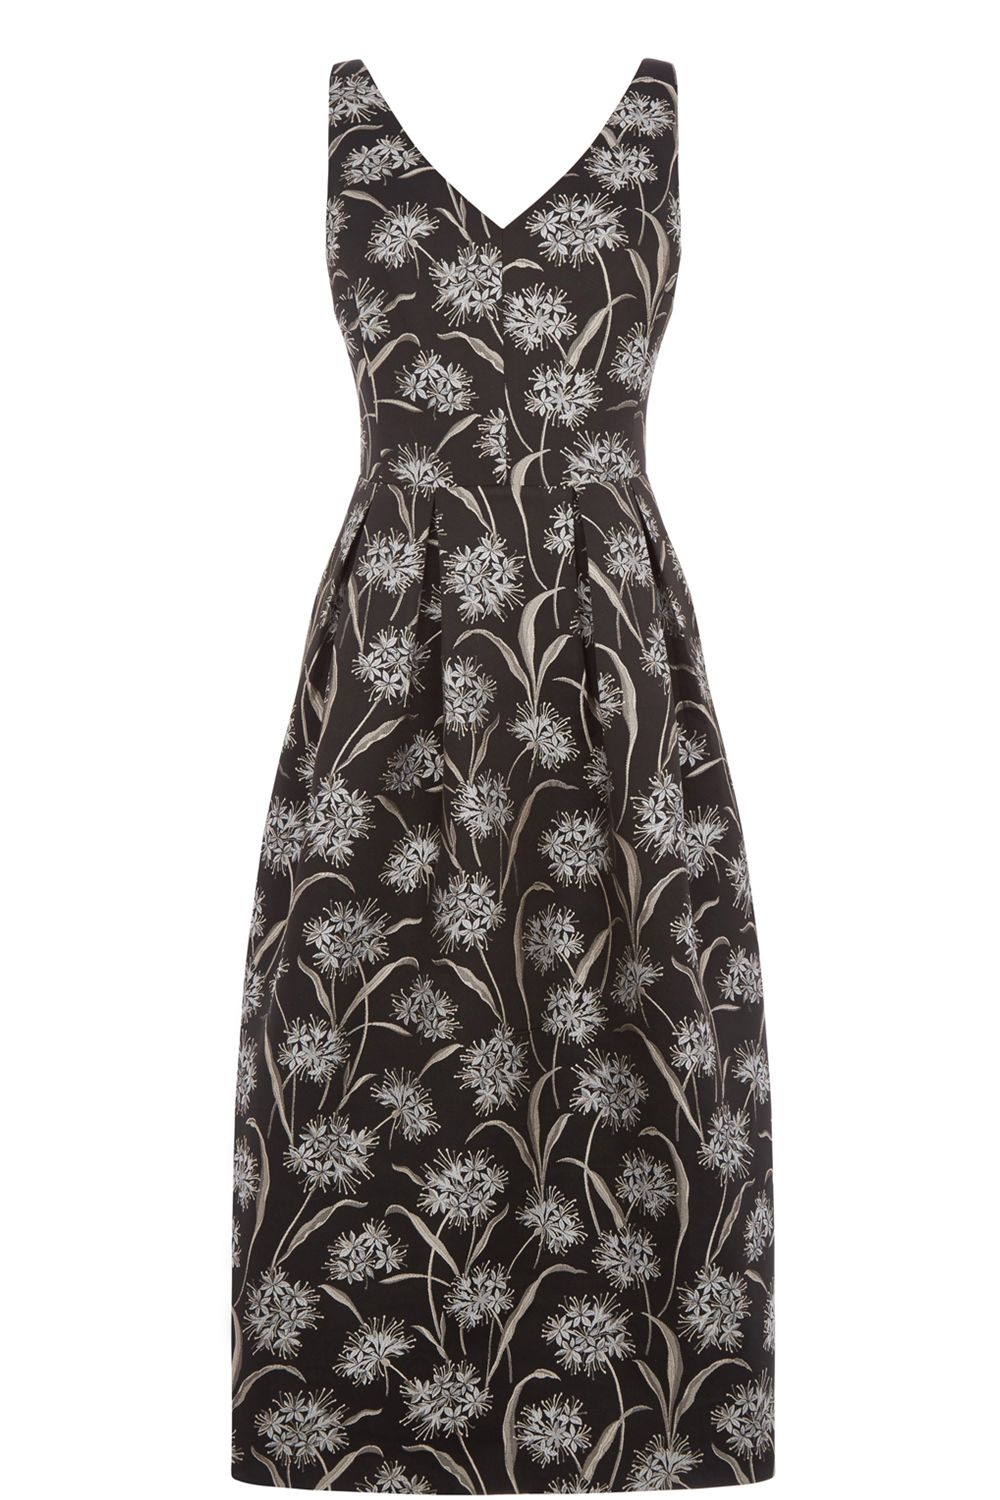 Oasis Dandelion Jacquard Midi Dress, Black